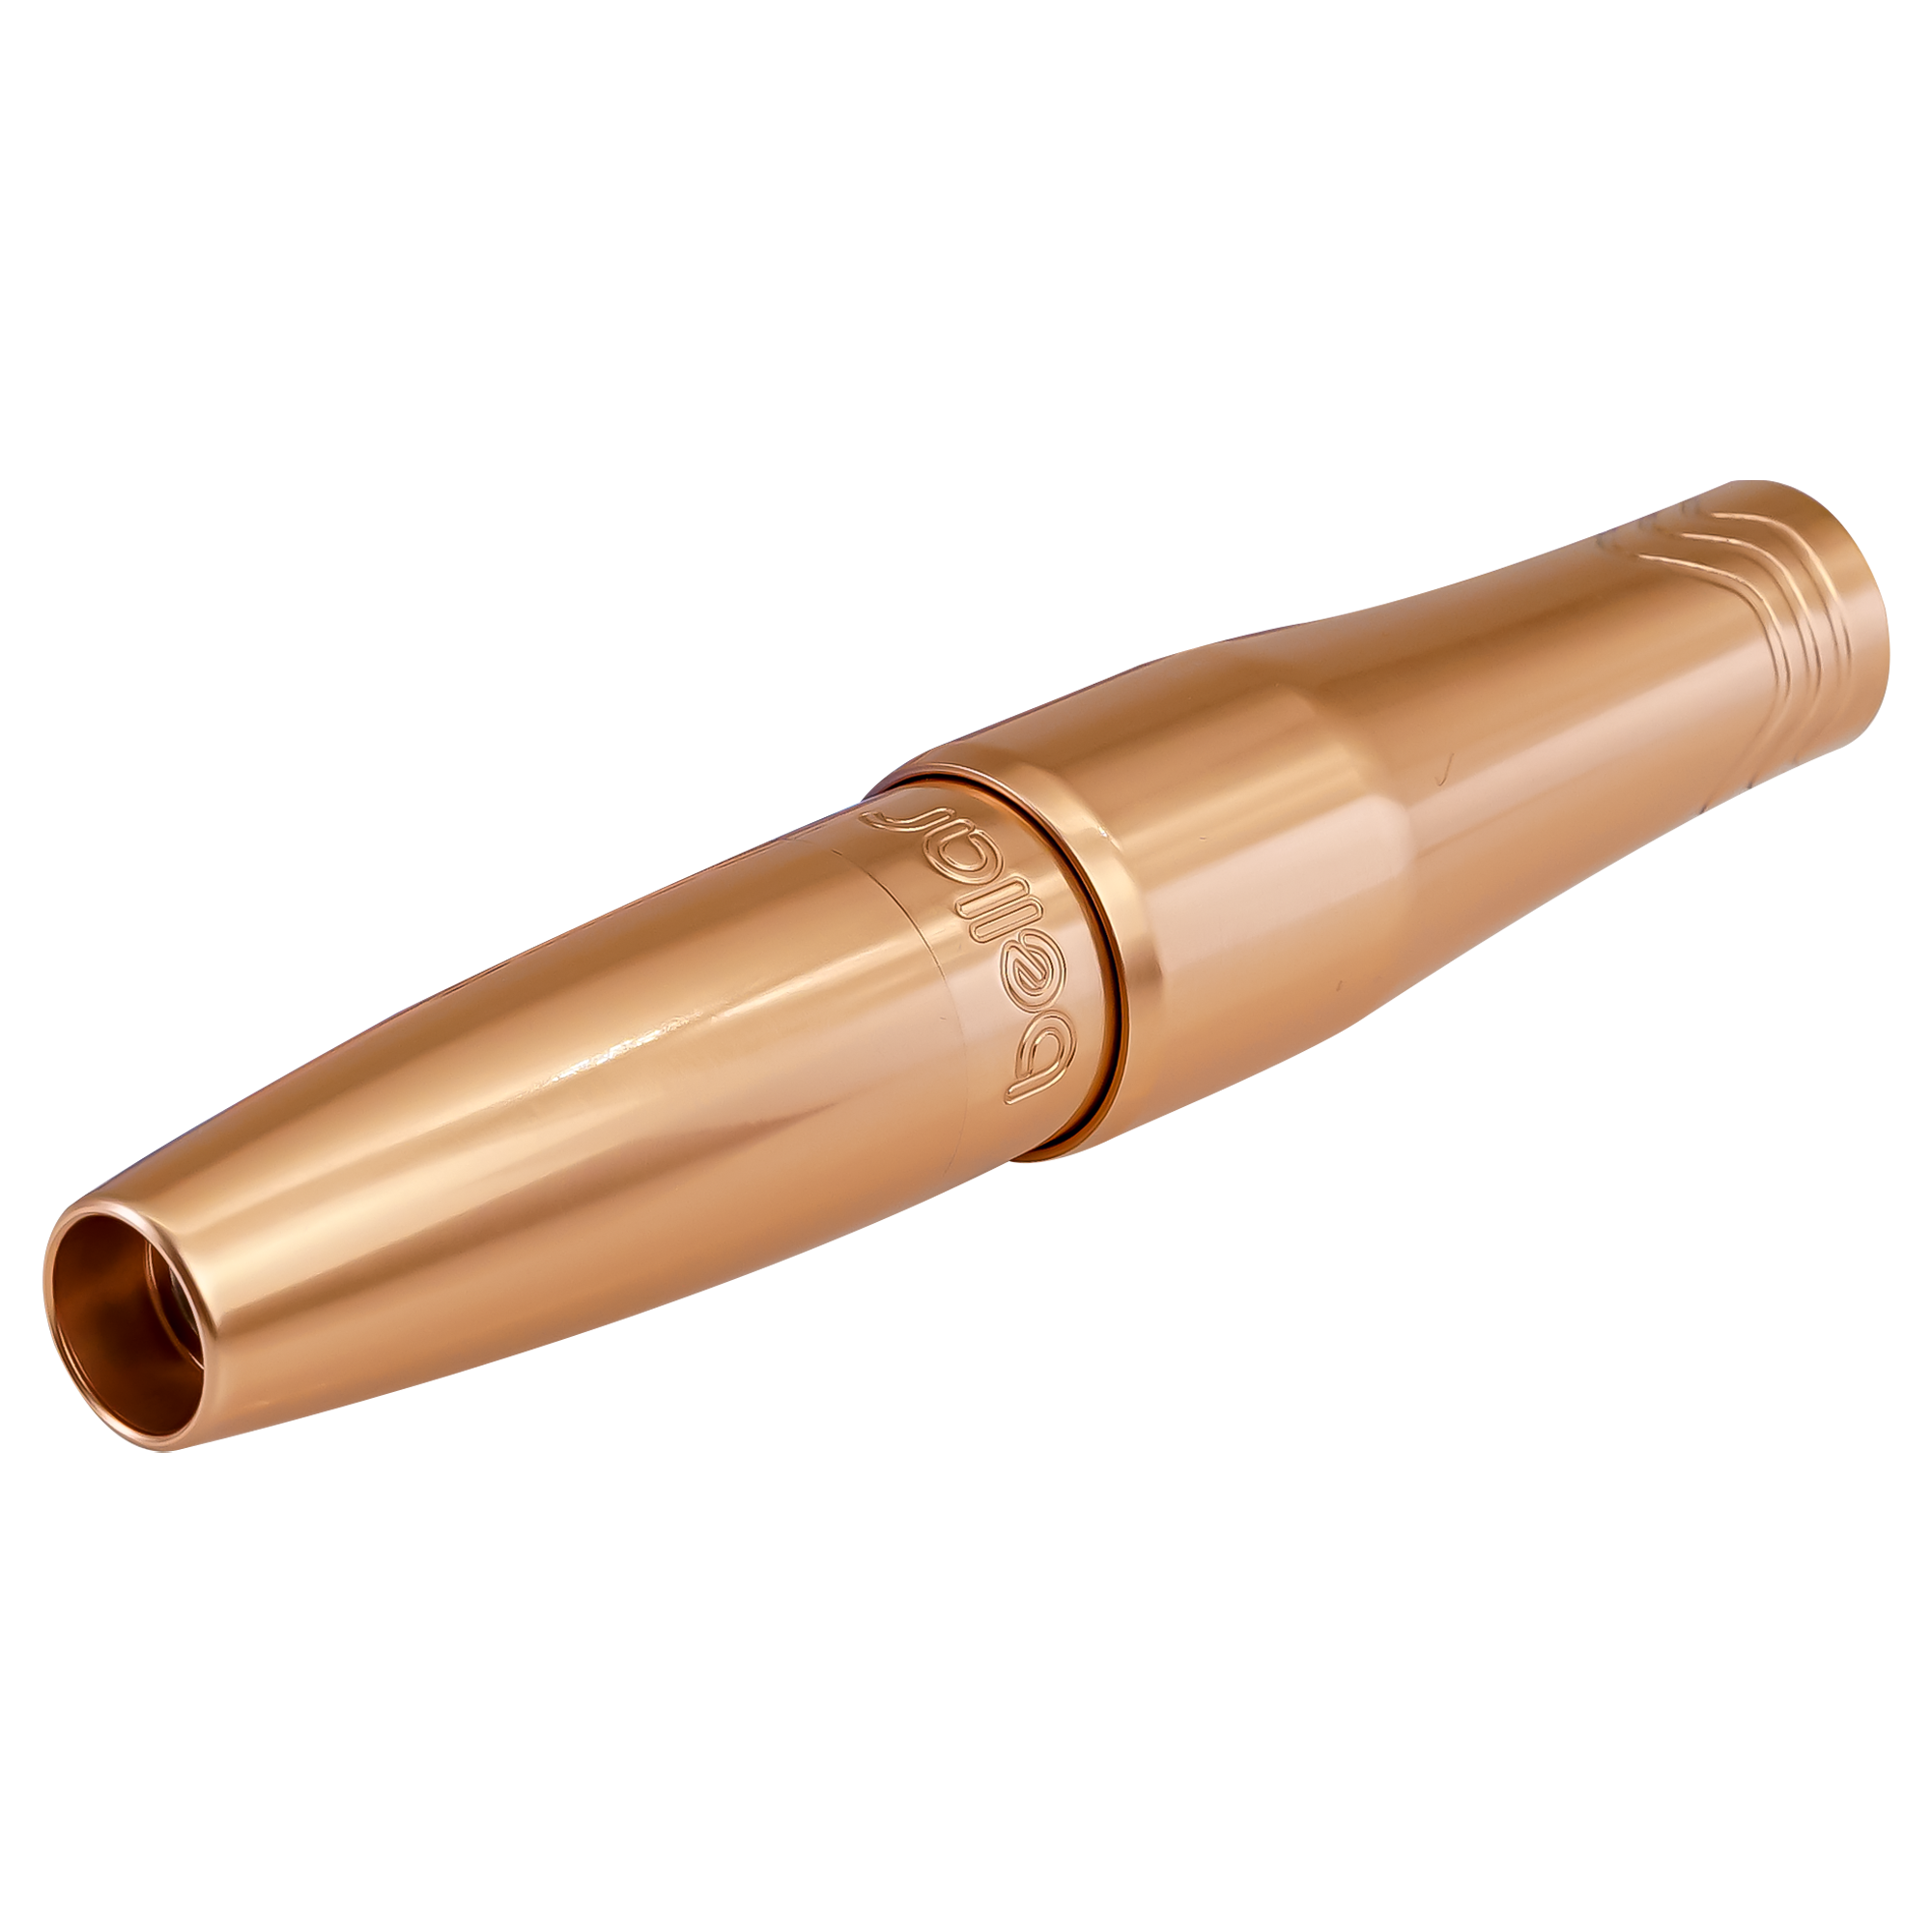 The Bellar PMU machine is one of the pros favorites for lip lining and hair strokes, in anodized alluminum, rose gold color